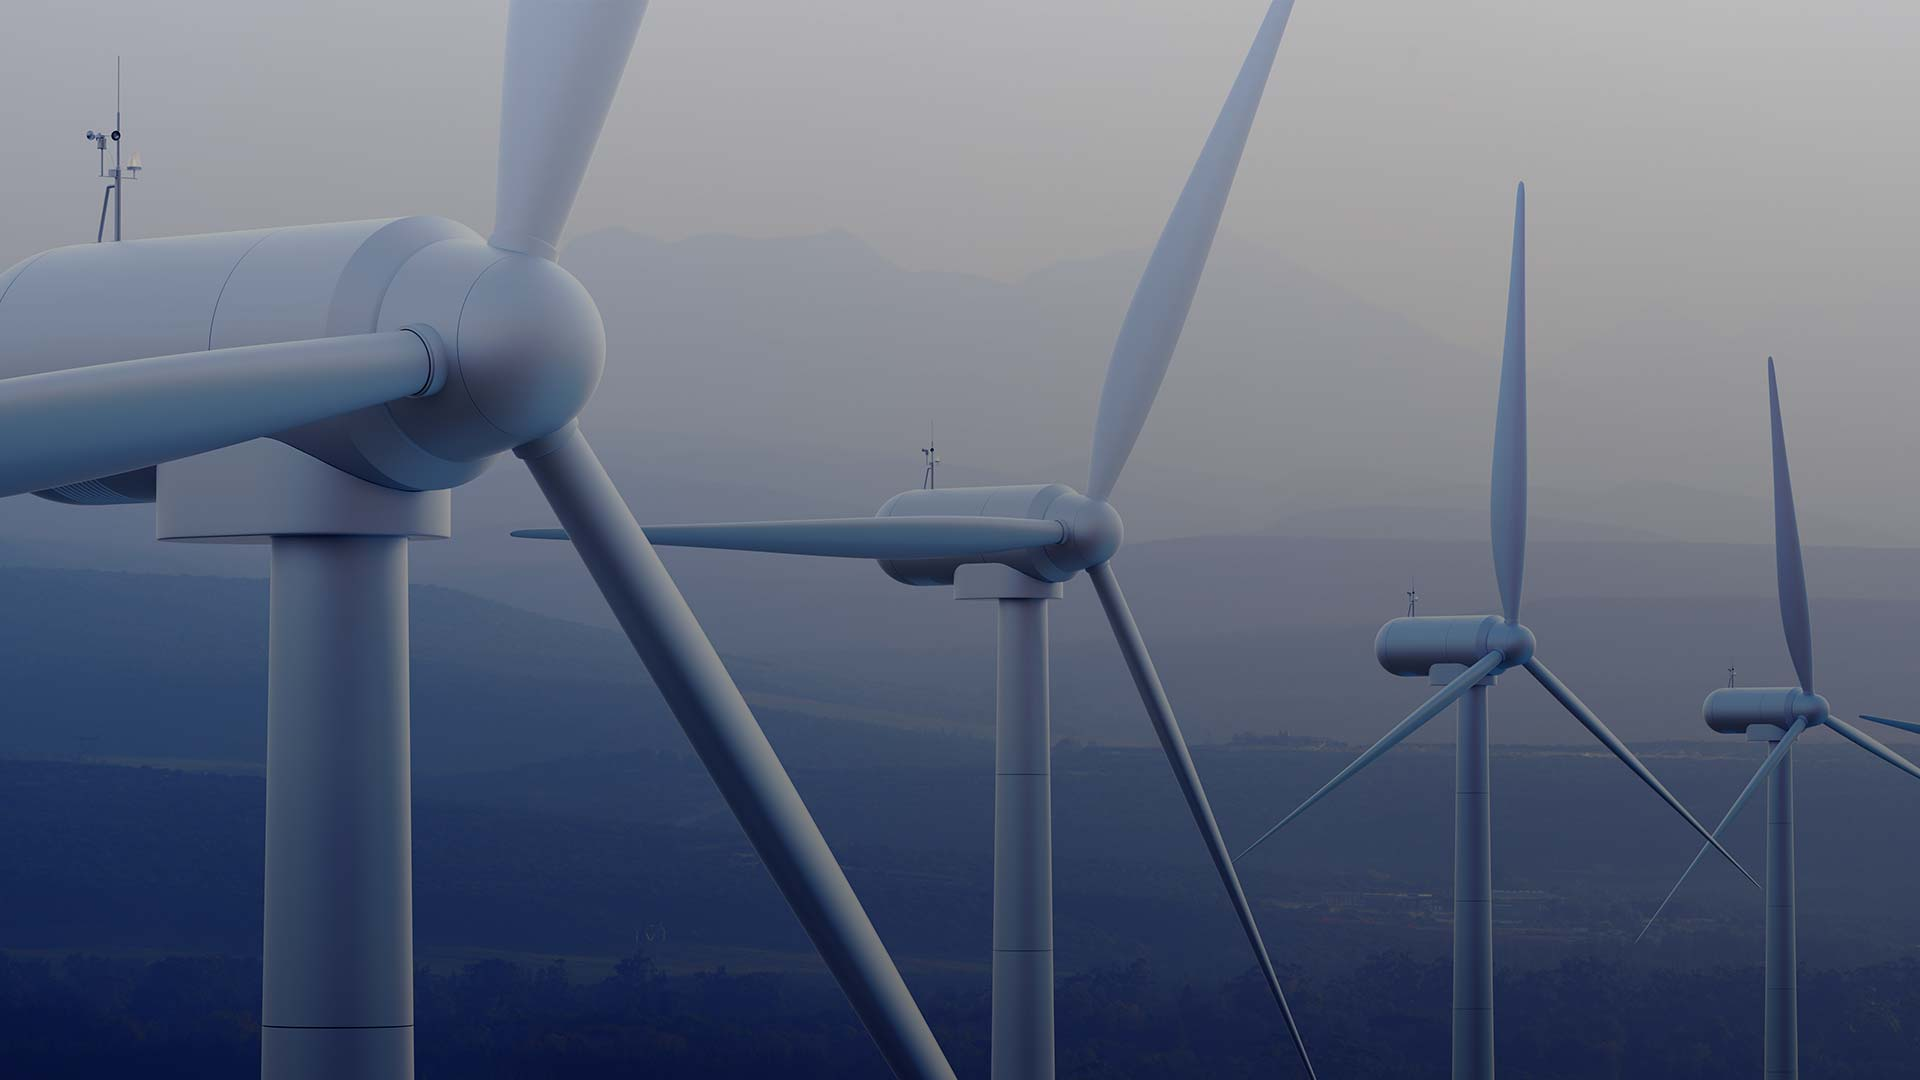 Wind Power Finance Investment Presented By Infocast